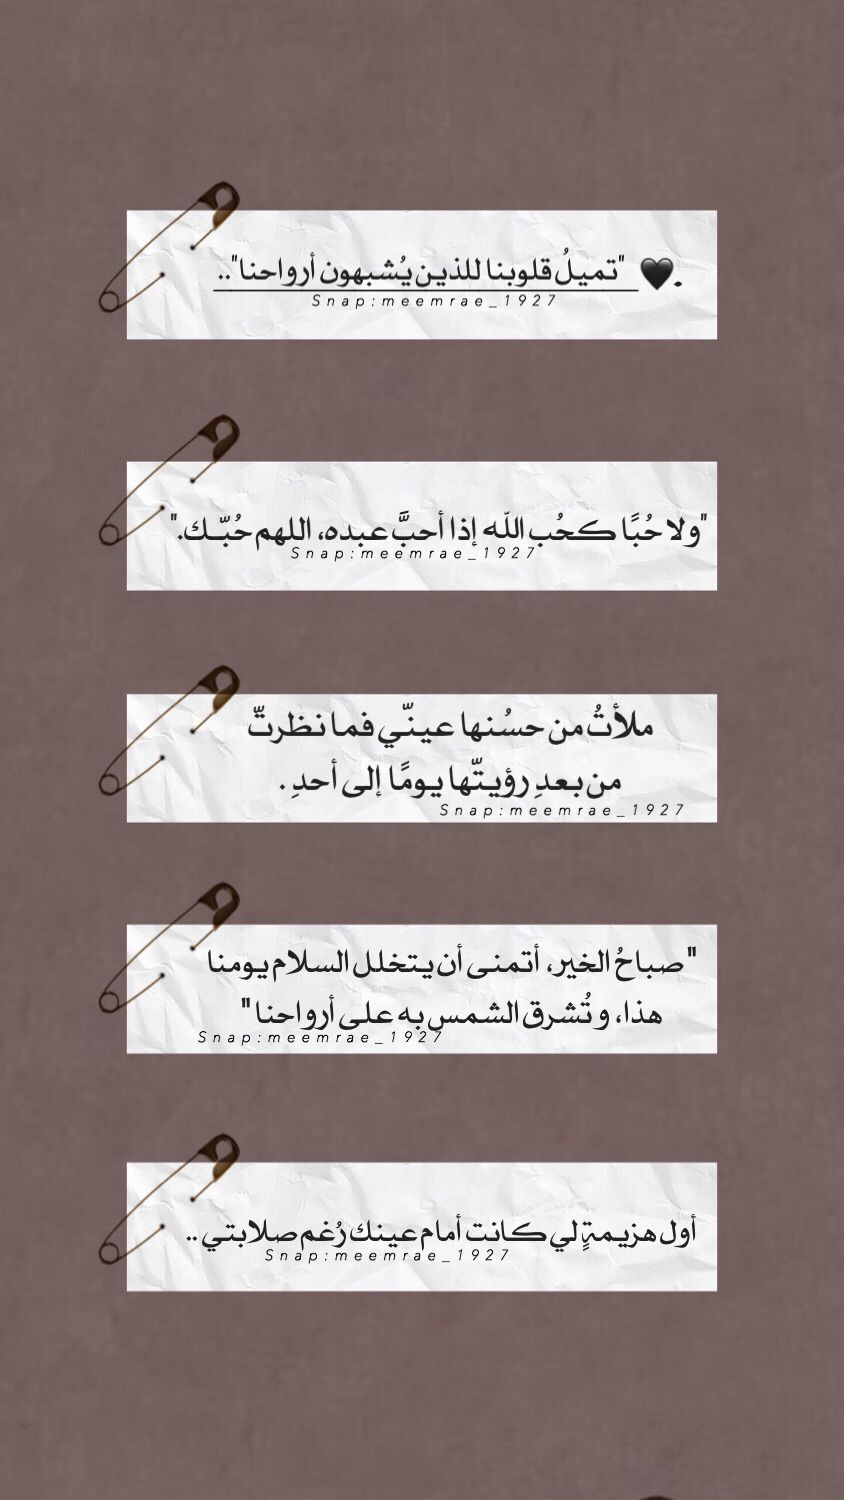 Pin By M On اقتباسات هيدرات ميم Love Quotes Photos Iphone Wallpaper Quotes Love Love Smile Quotes